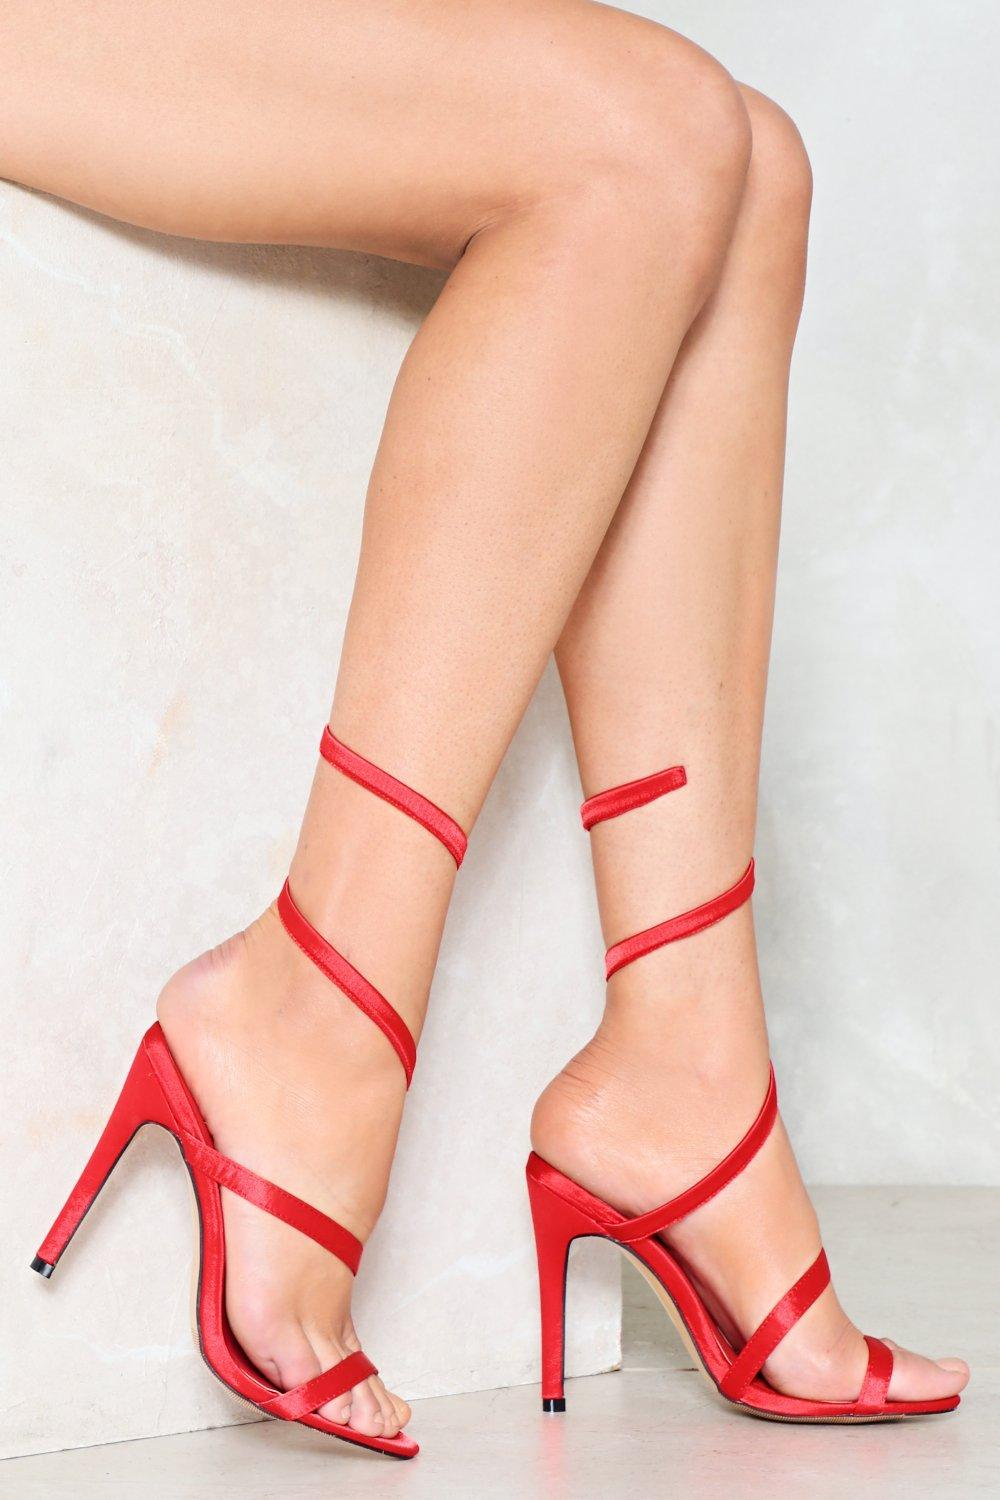 a3de9600aab Under Wraps Stiletto Heel | Shop Clothes at Nasty Gal!